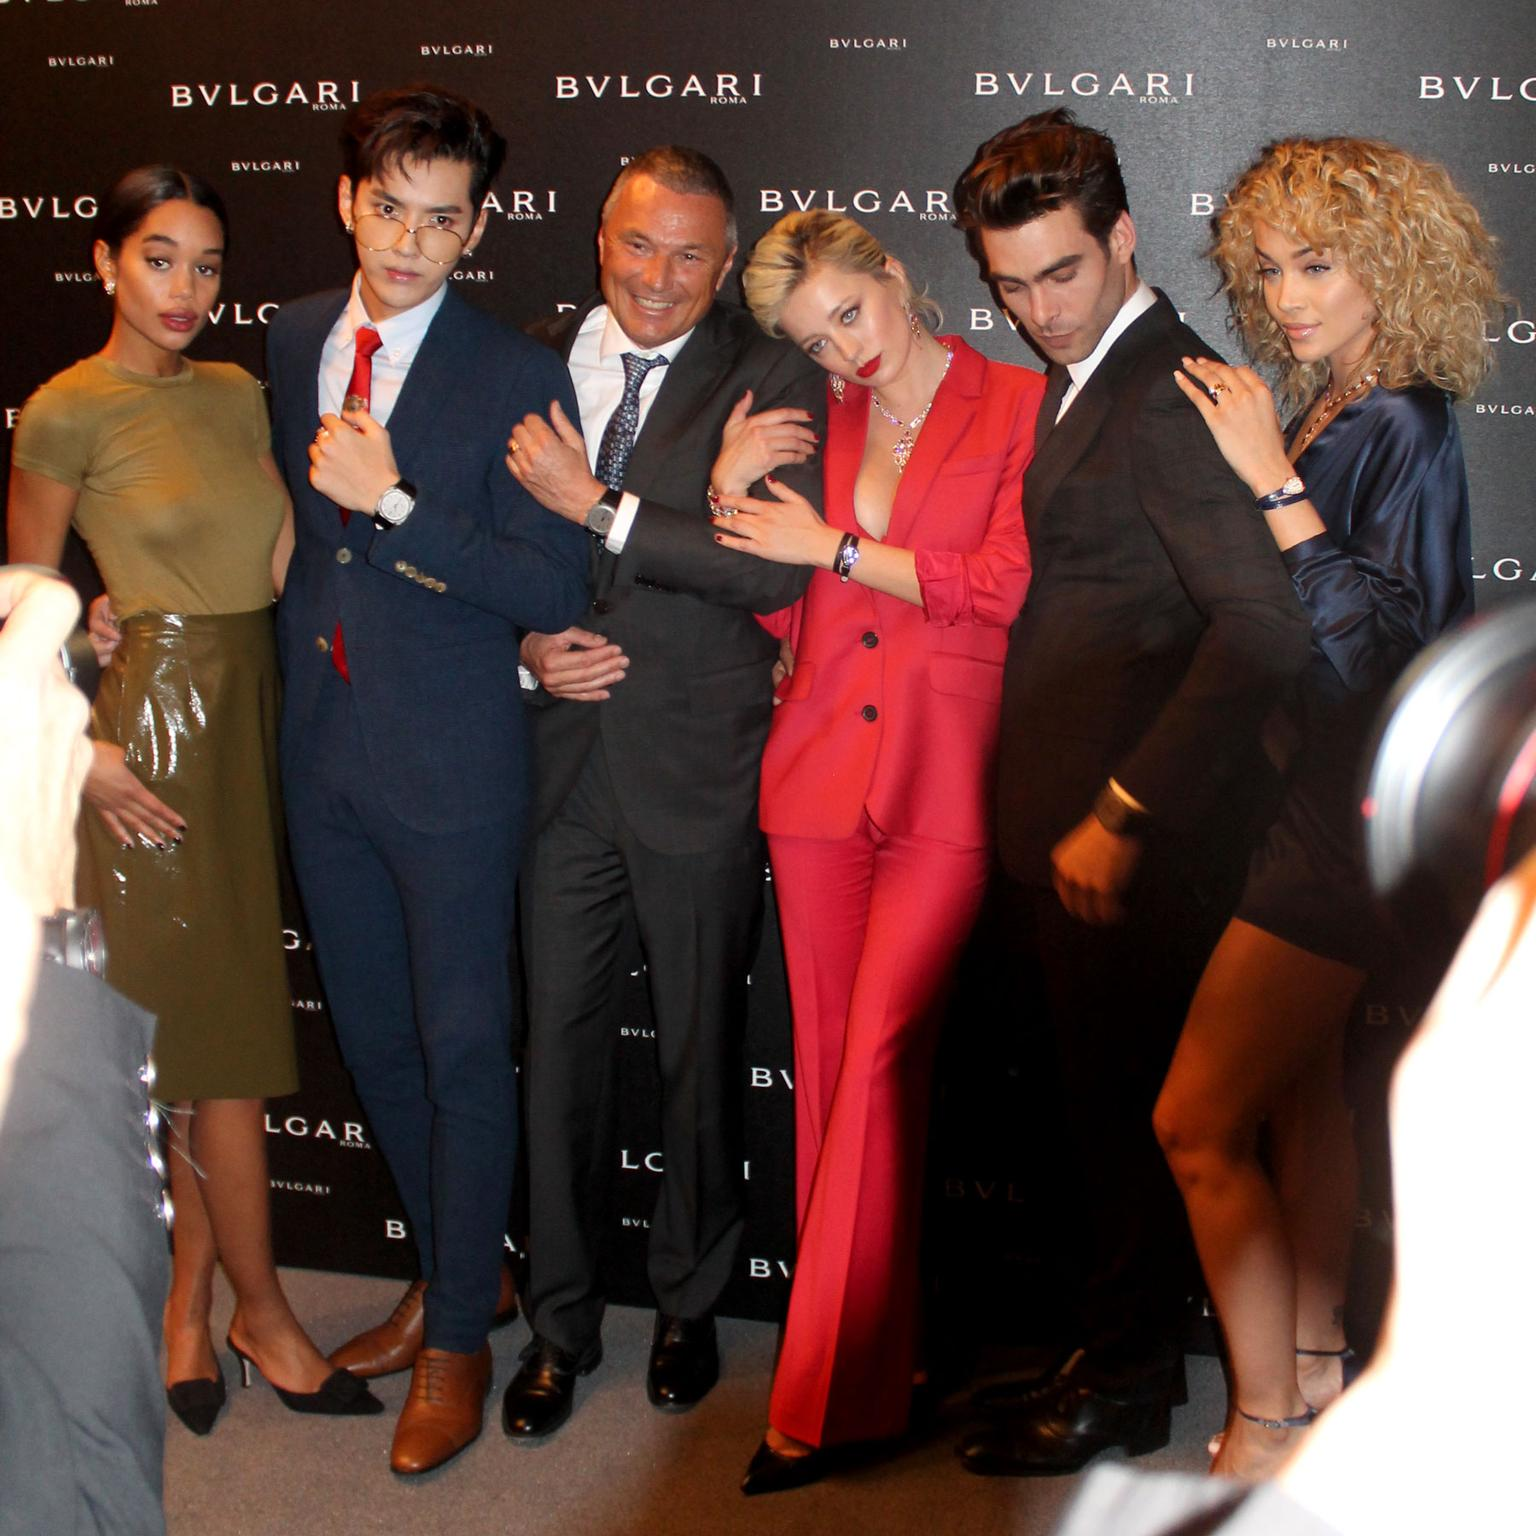 Bulgari celebrity launch party Baselworld 2017